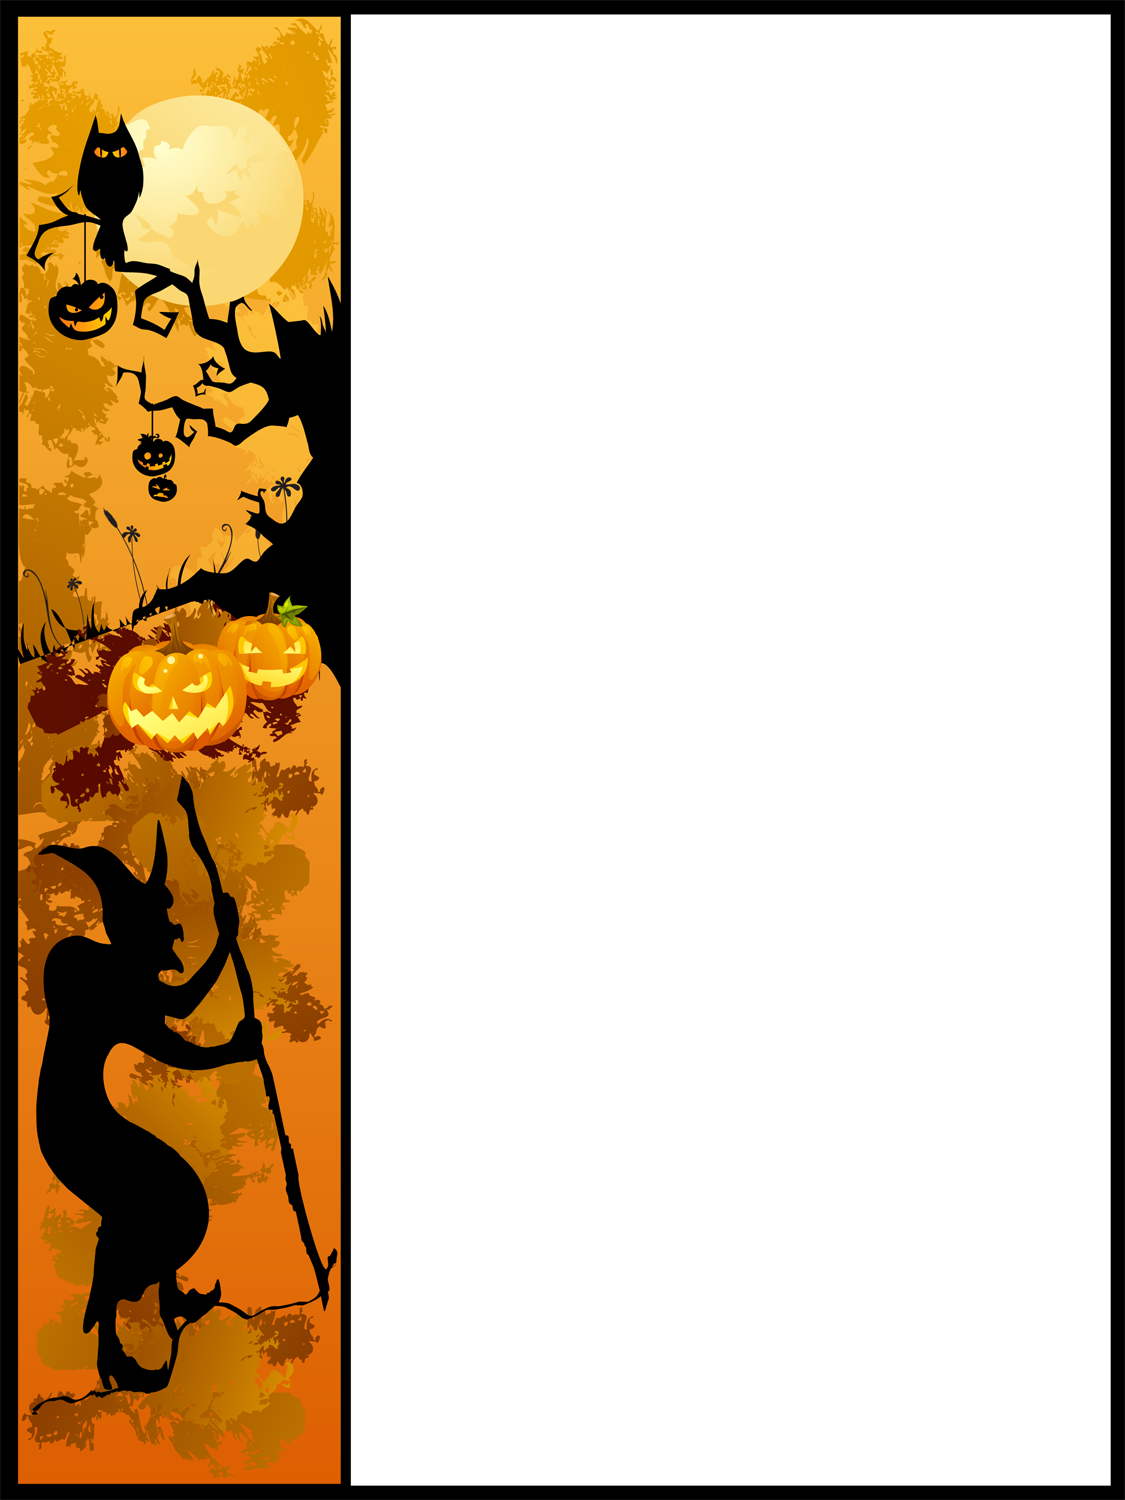 Halloween border landscape png. Collection of pumpkin